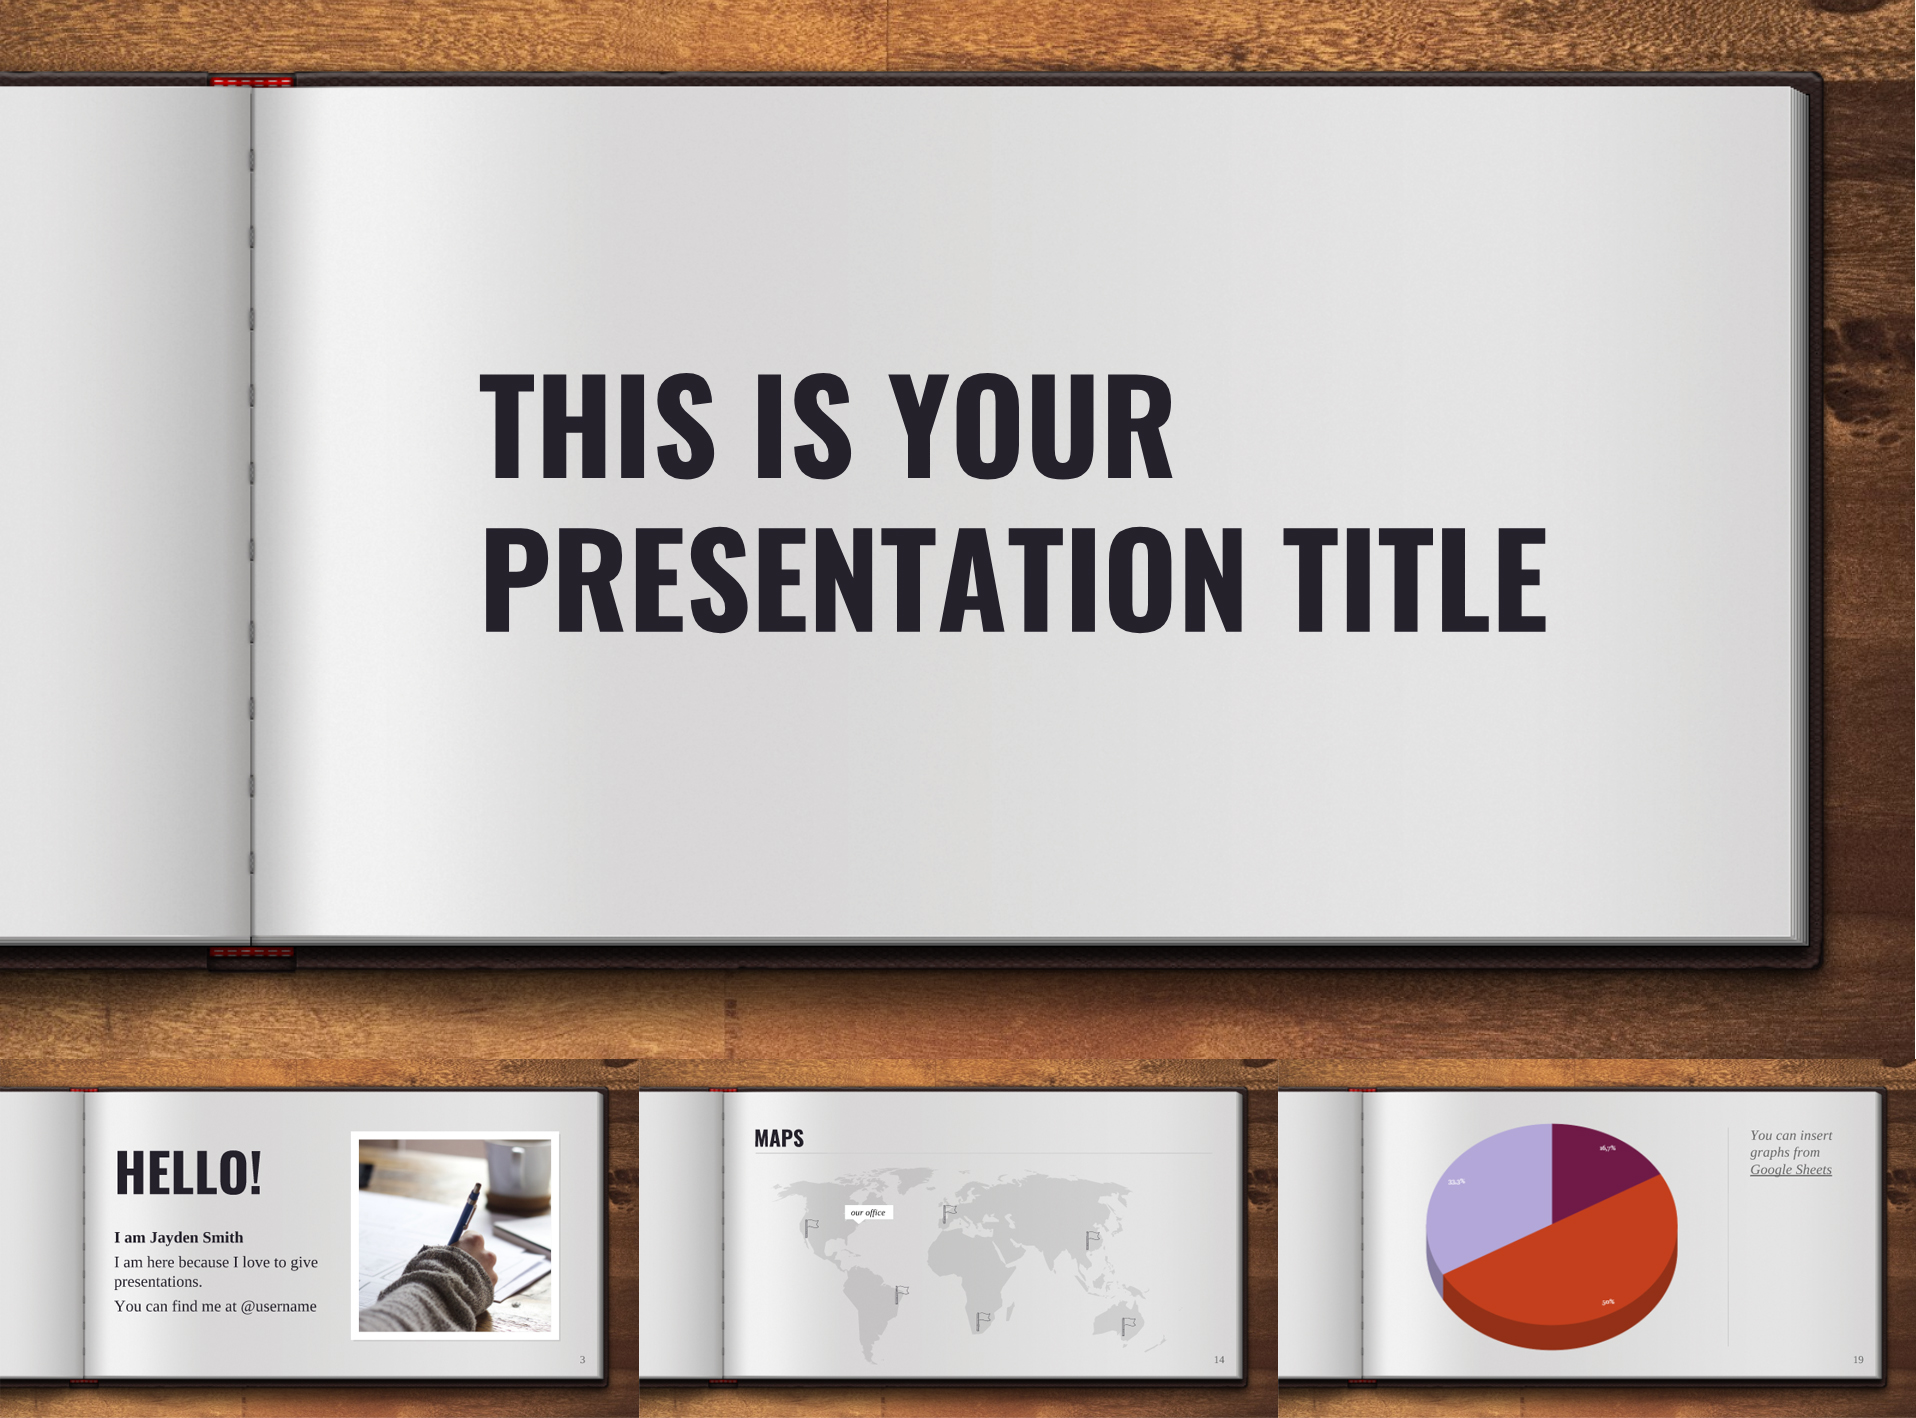 Open Book Free Google Slides Template - The Internet Tips